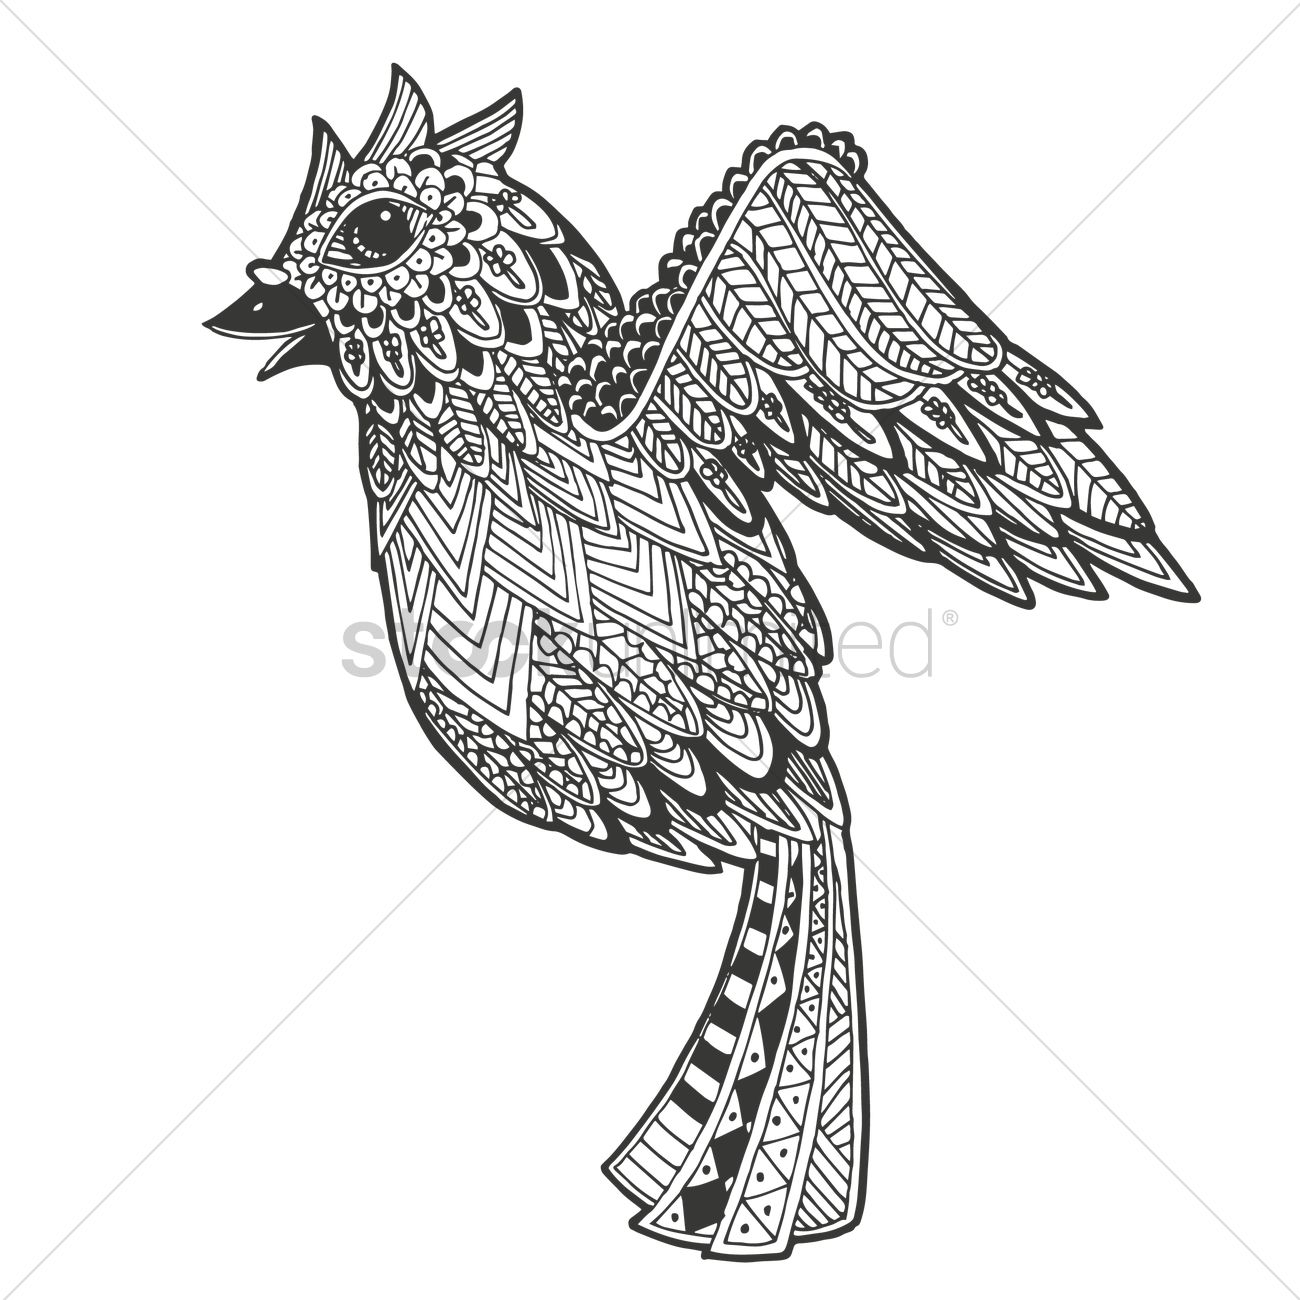 Stylized Bird Design Vector Image 1544173 Stockunlimited